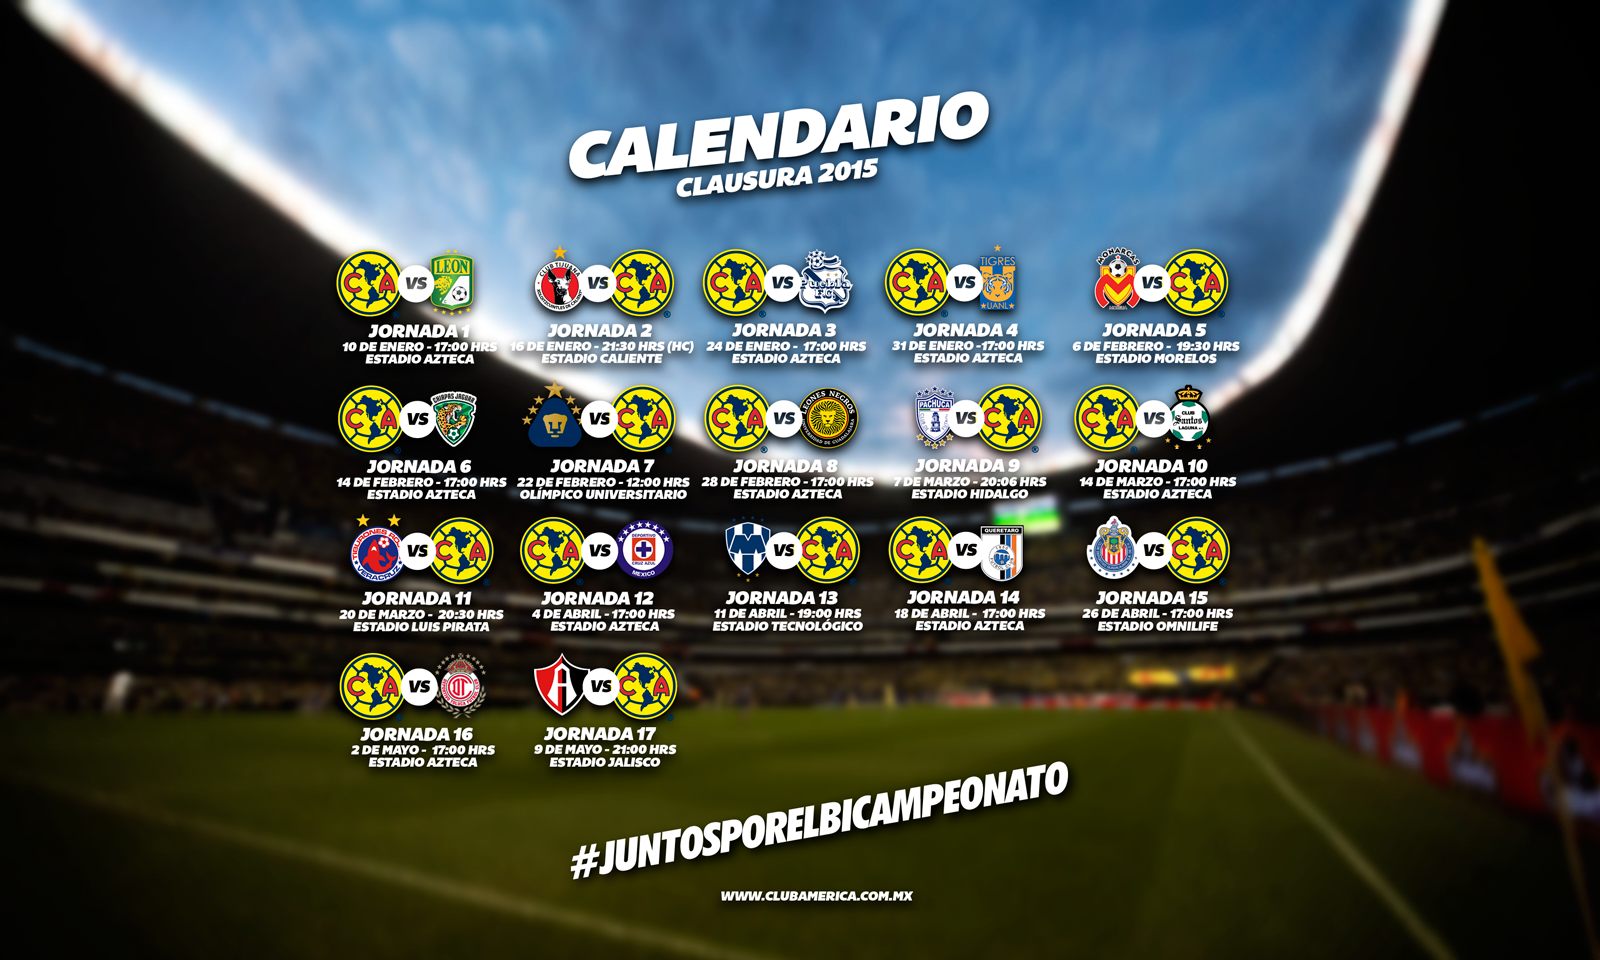 Calendario Clausura 2014 Liga Mx Calendario De Futbol Mexicano 2016